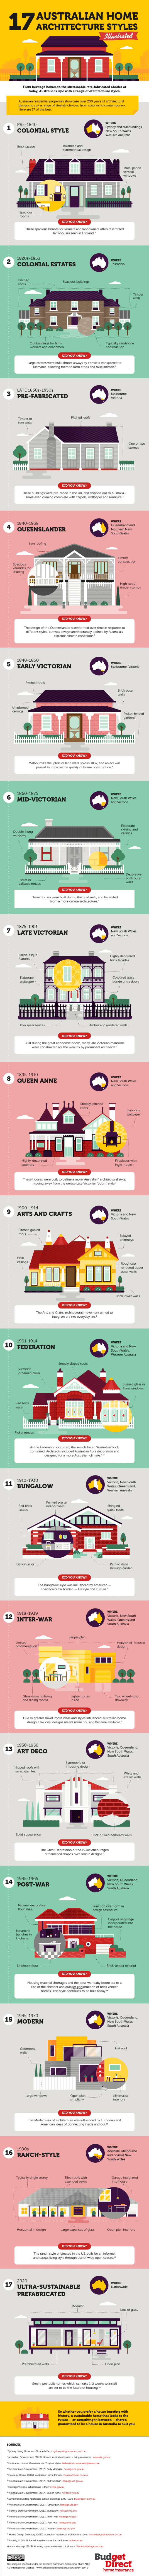 17 Australian home architecture styles Infographic